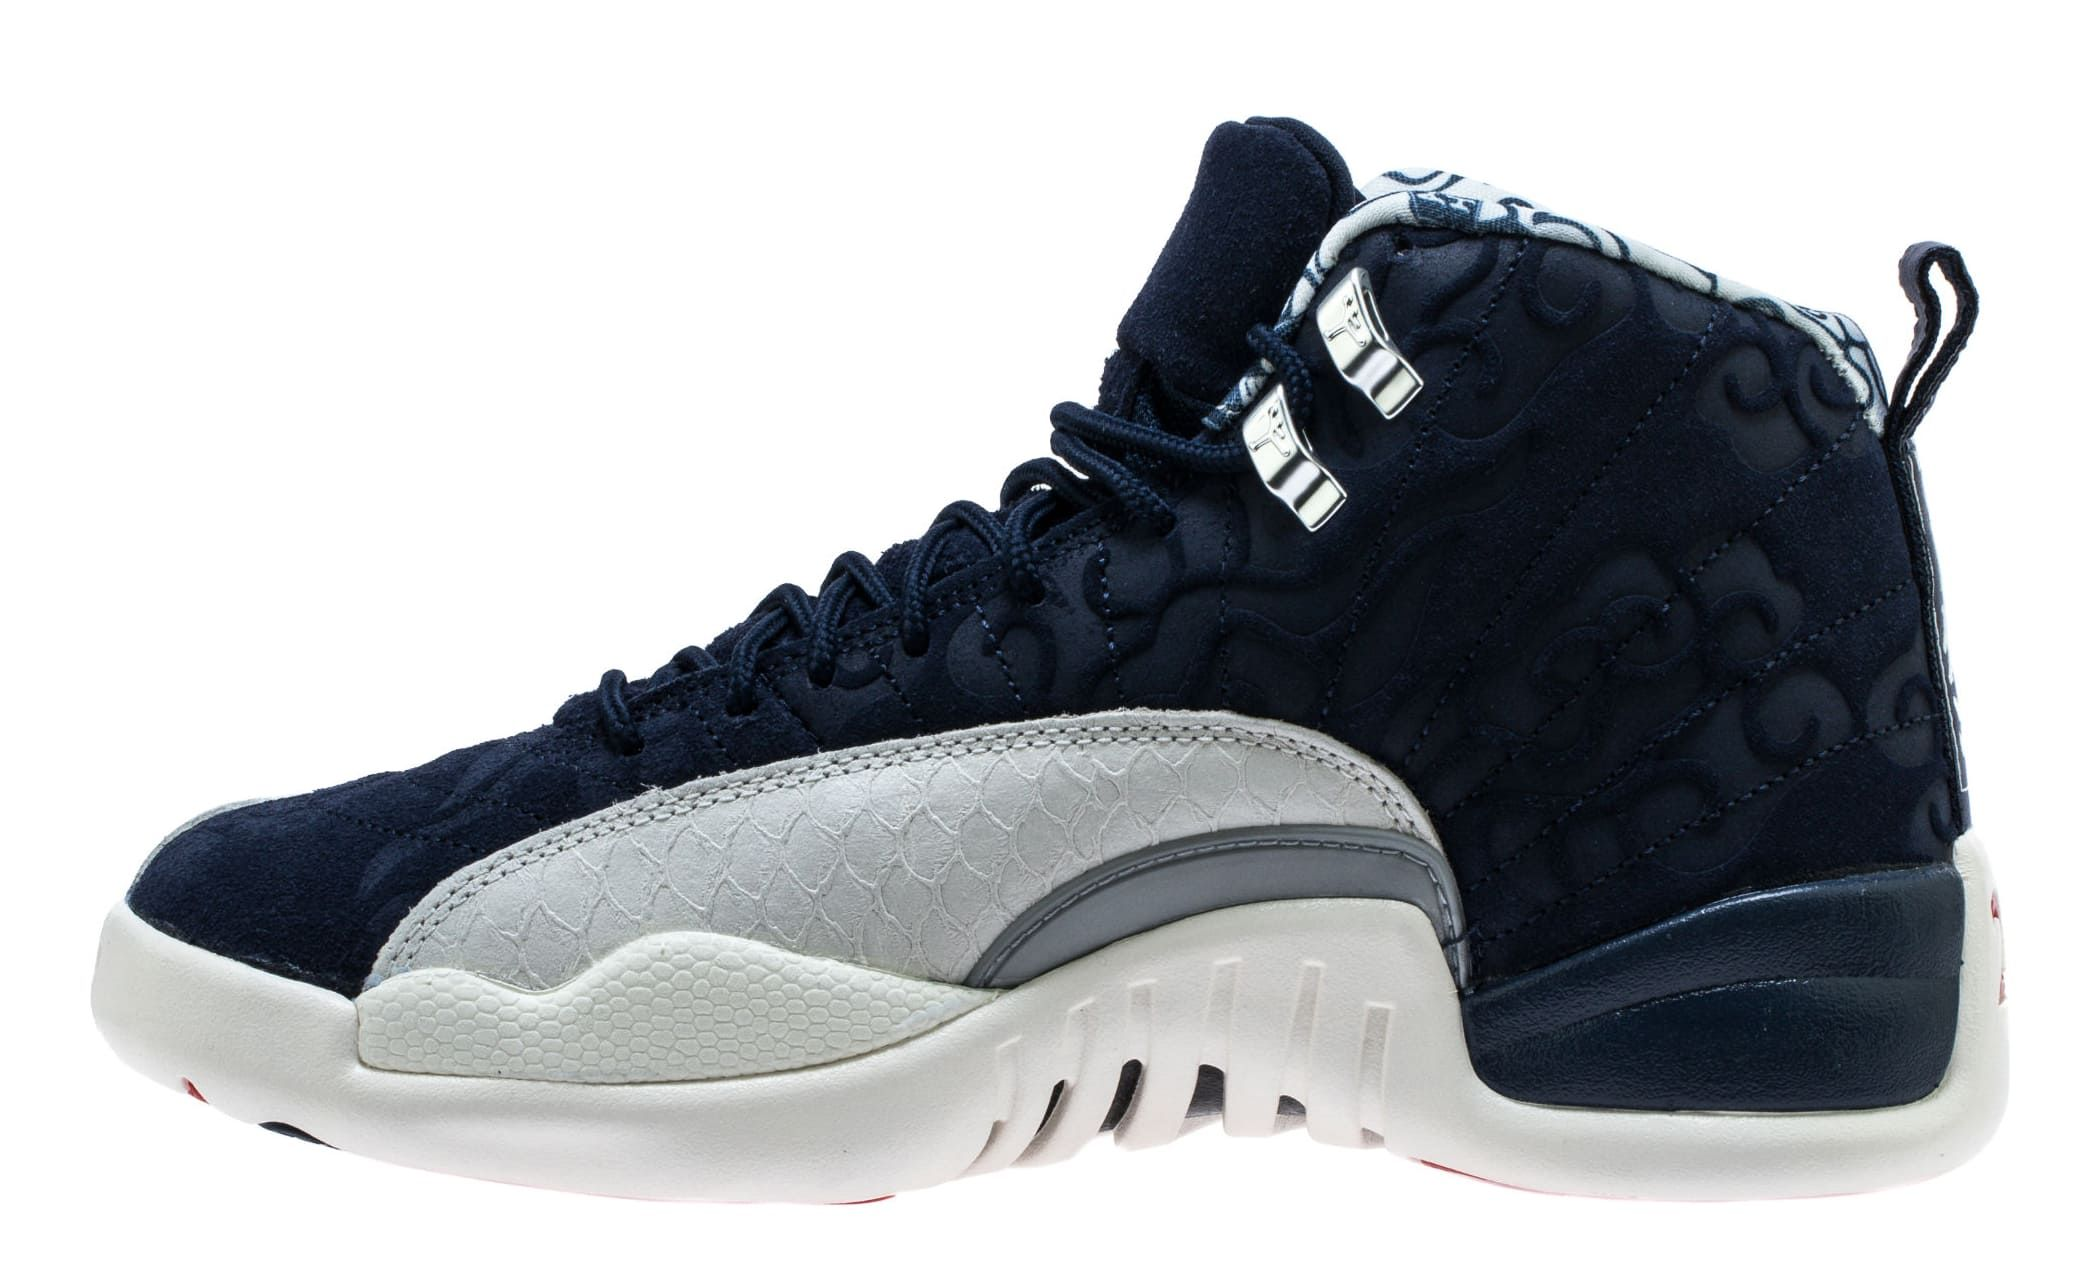 buy online 085f7 6ffd0 Air Jordan 12 XII Japan International Flight Release Date 130690-445